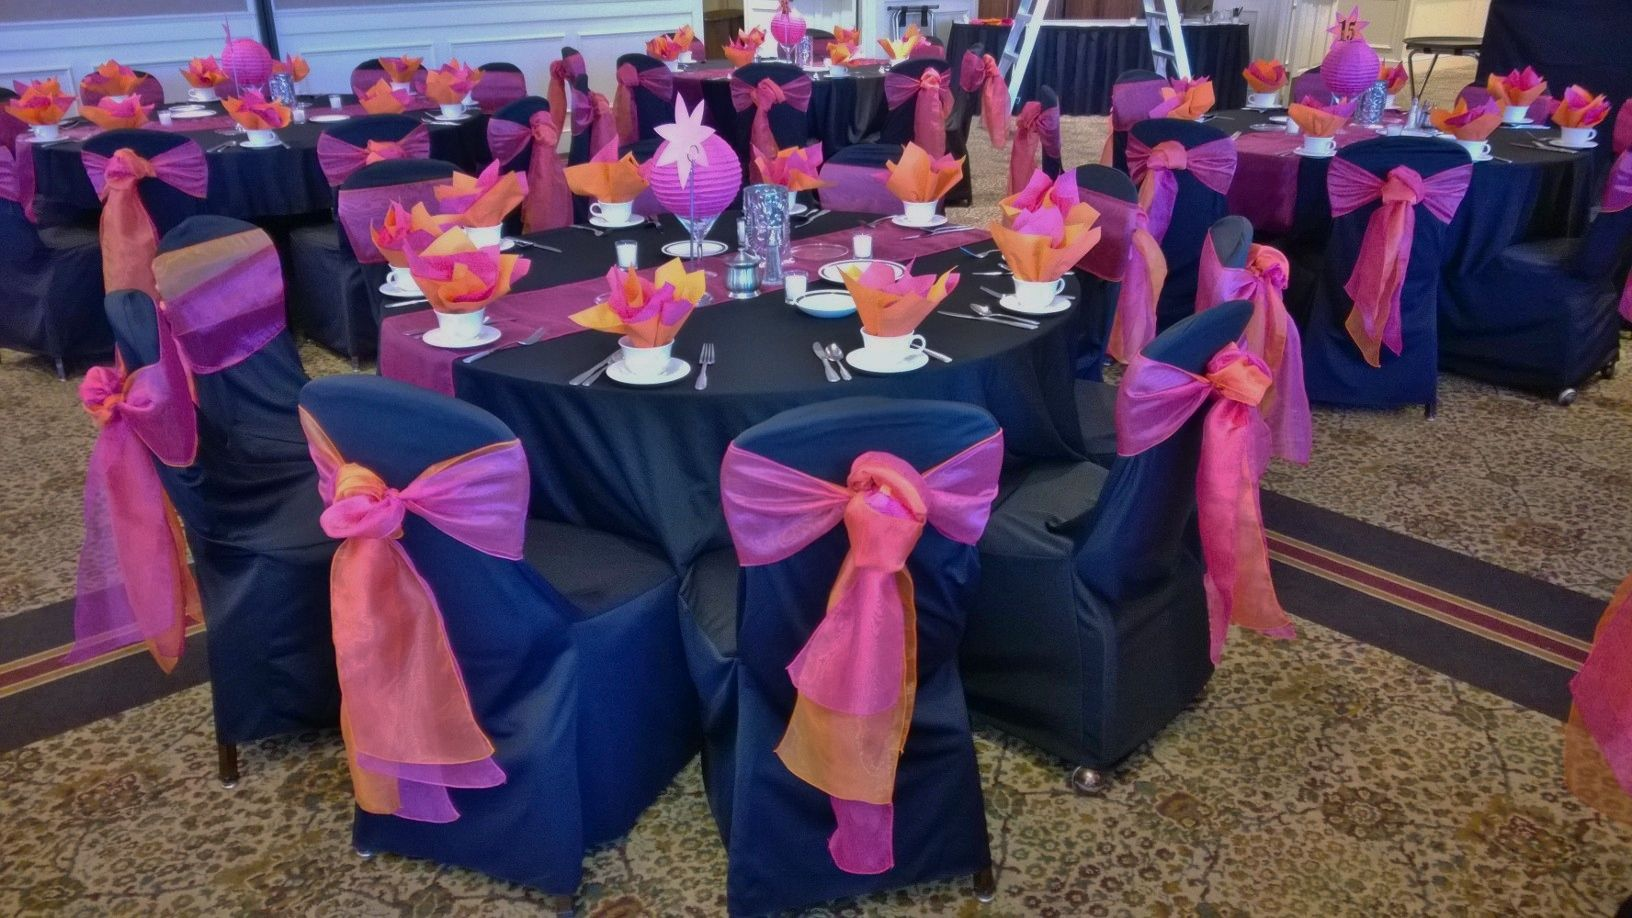 wedding chair covers east midlands cover rentals dallas texas black table linens with hot pink organza runners